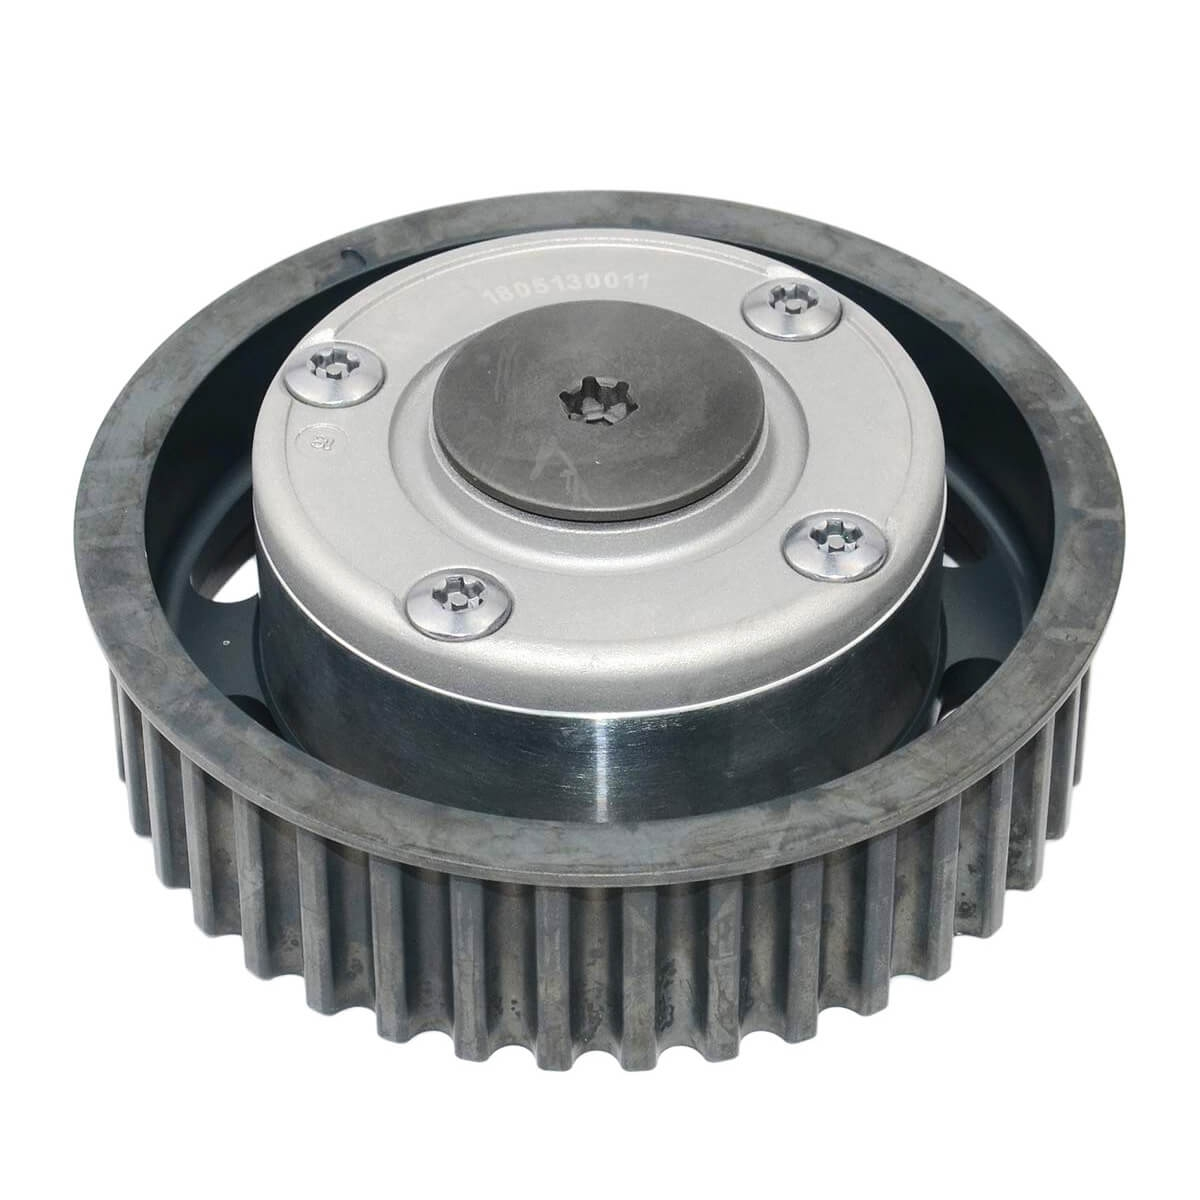 HONDA STREAM Cam Dephaser Pulley